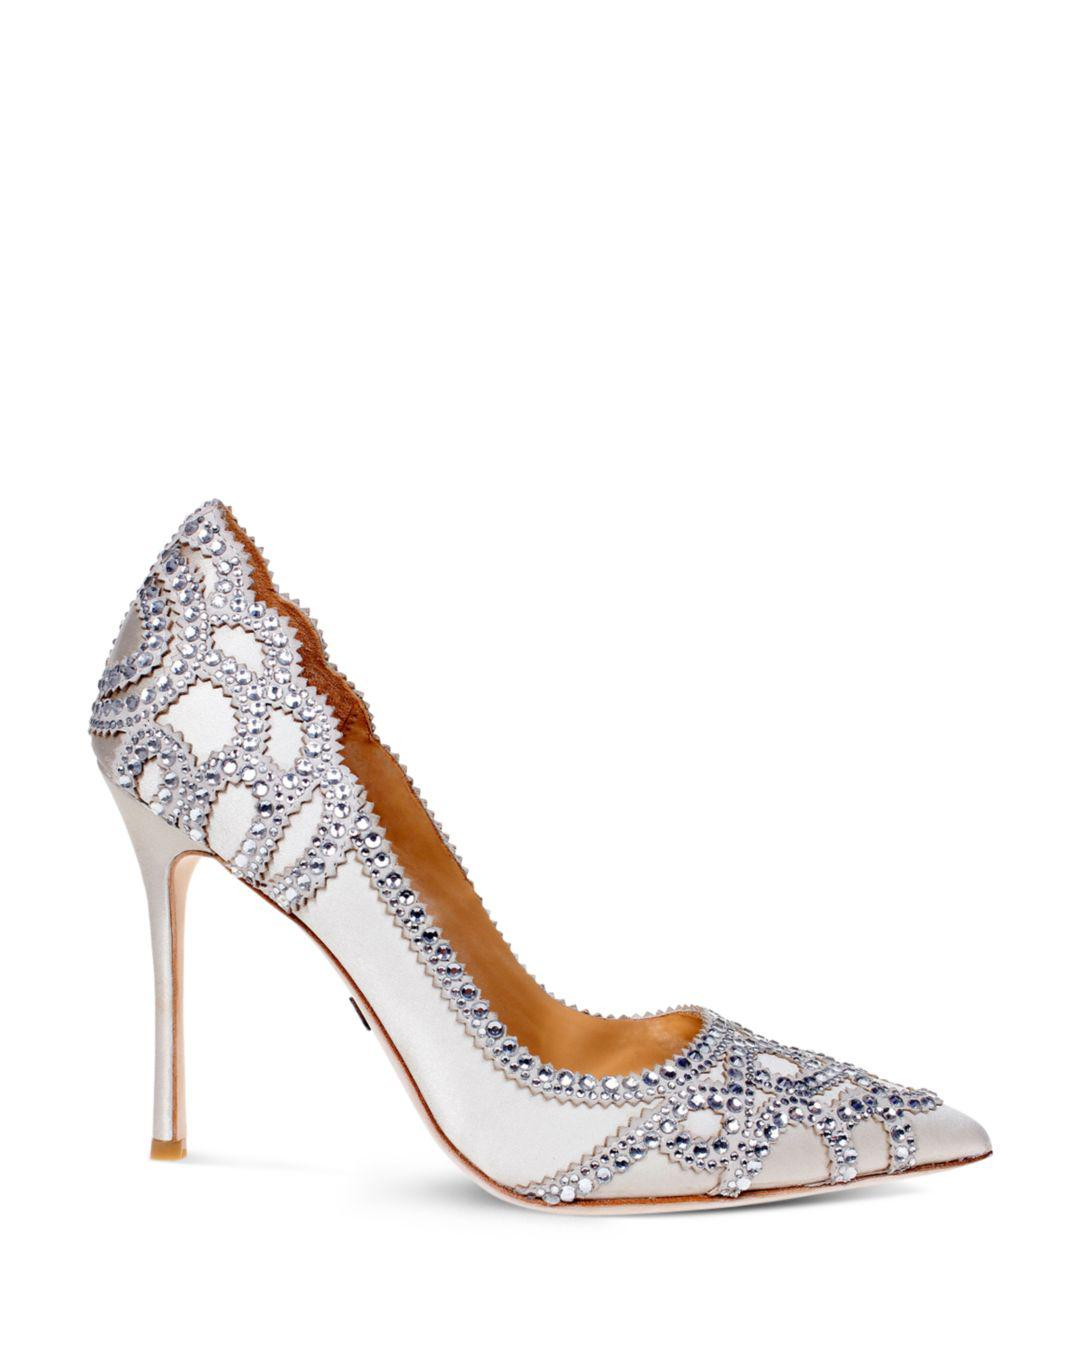 90de063a1ca Lyst - Badgley Mischka Rouge Embellished Pointed Toe Pumps in White